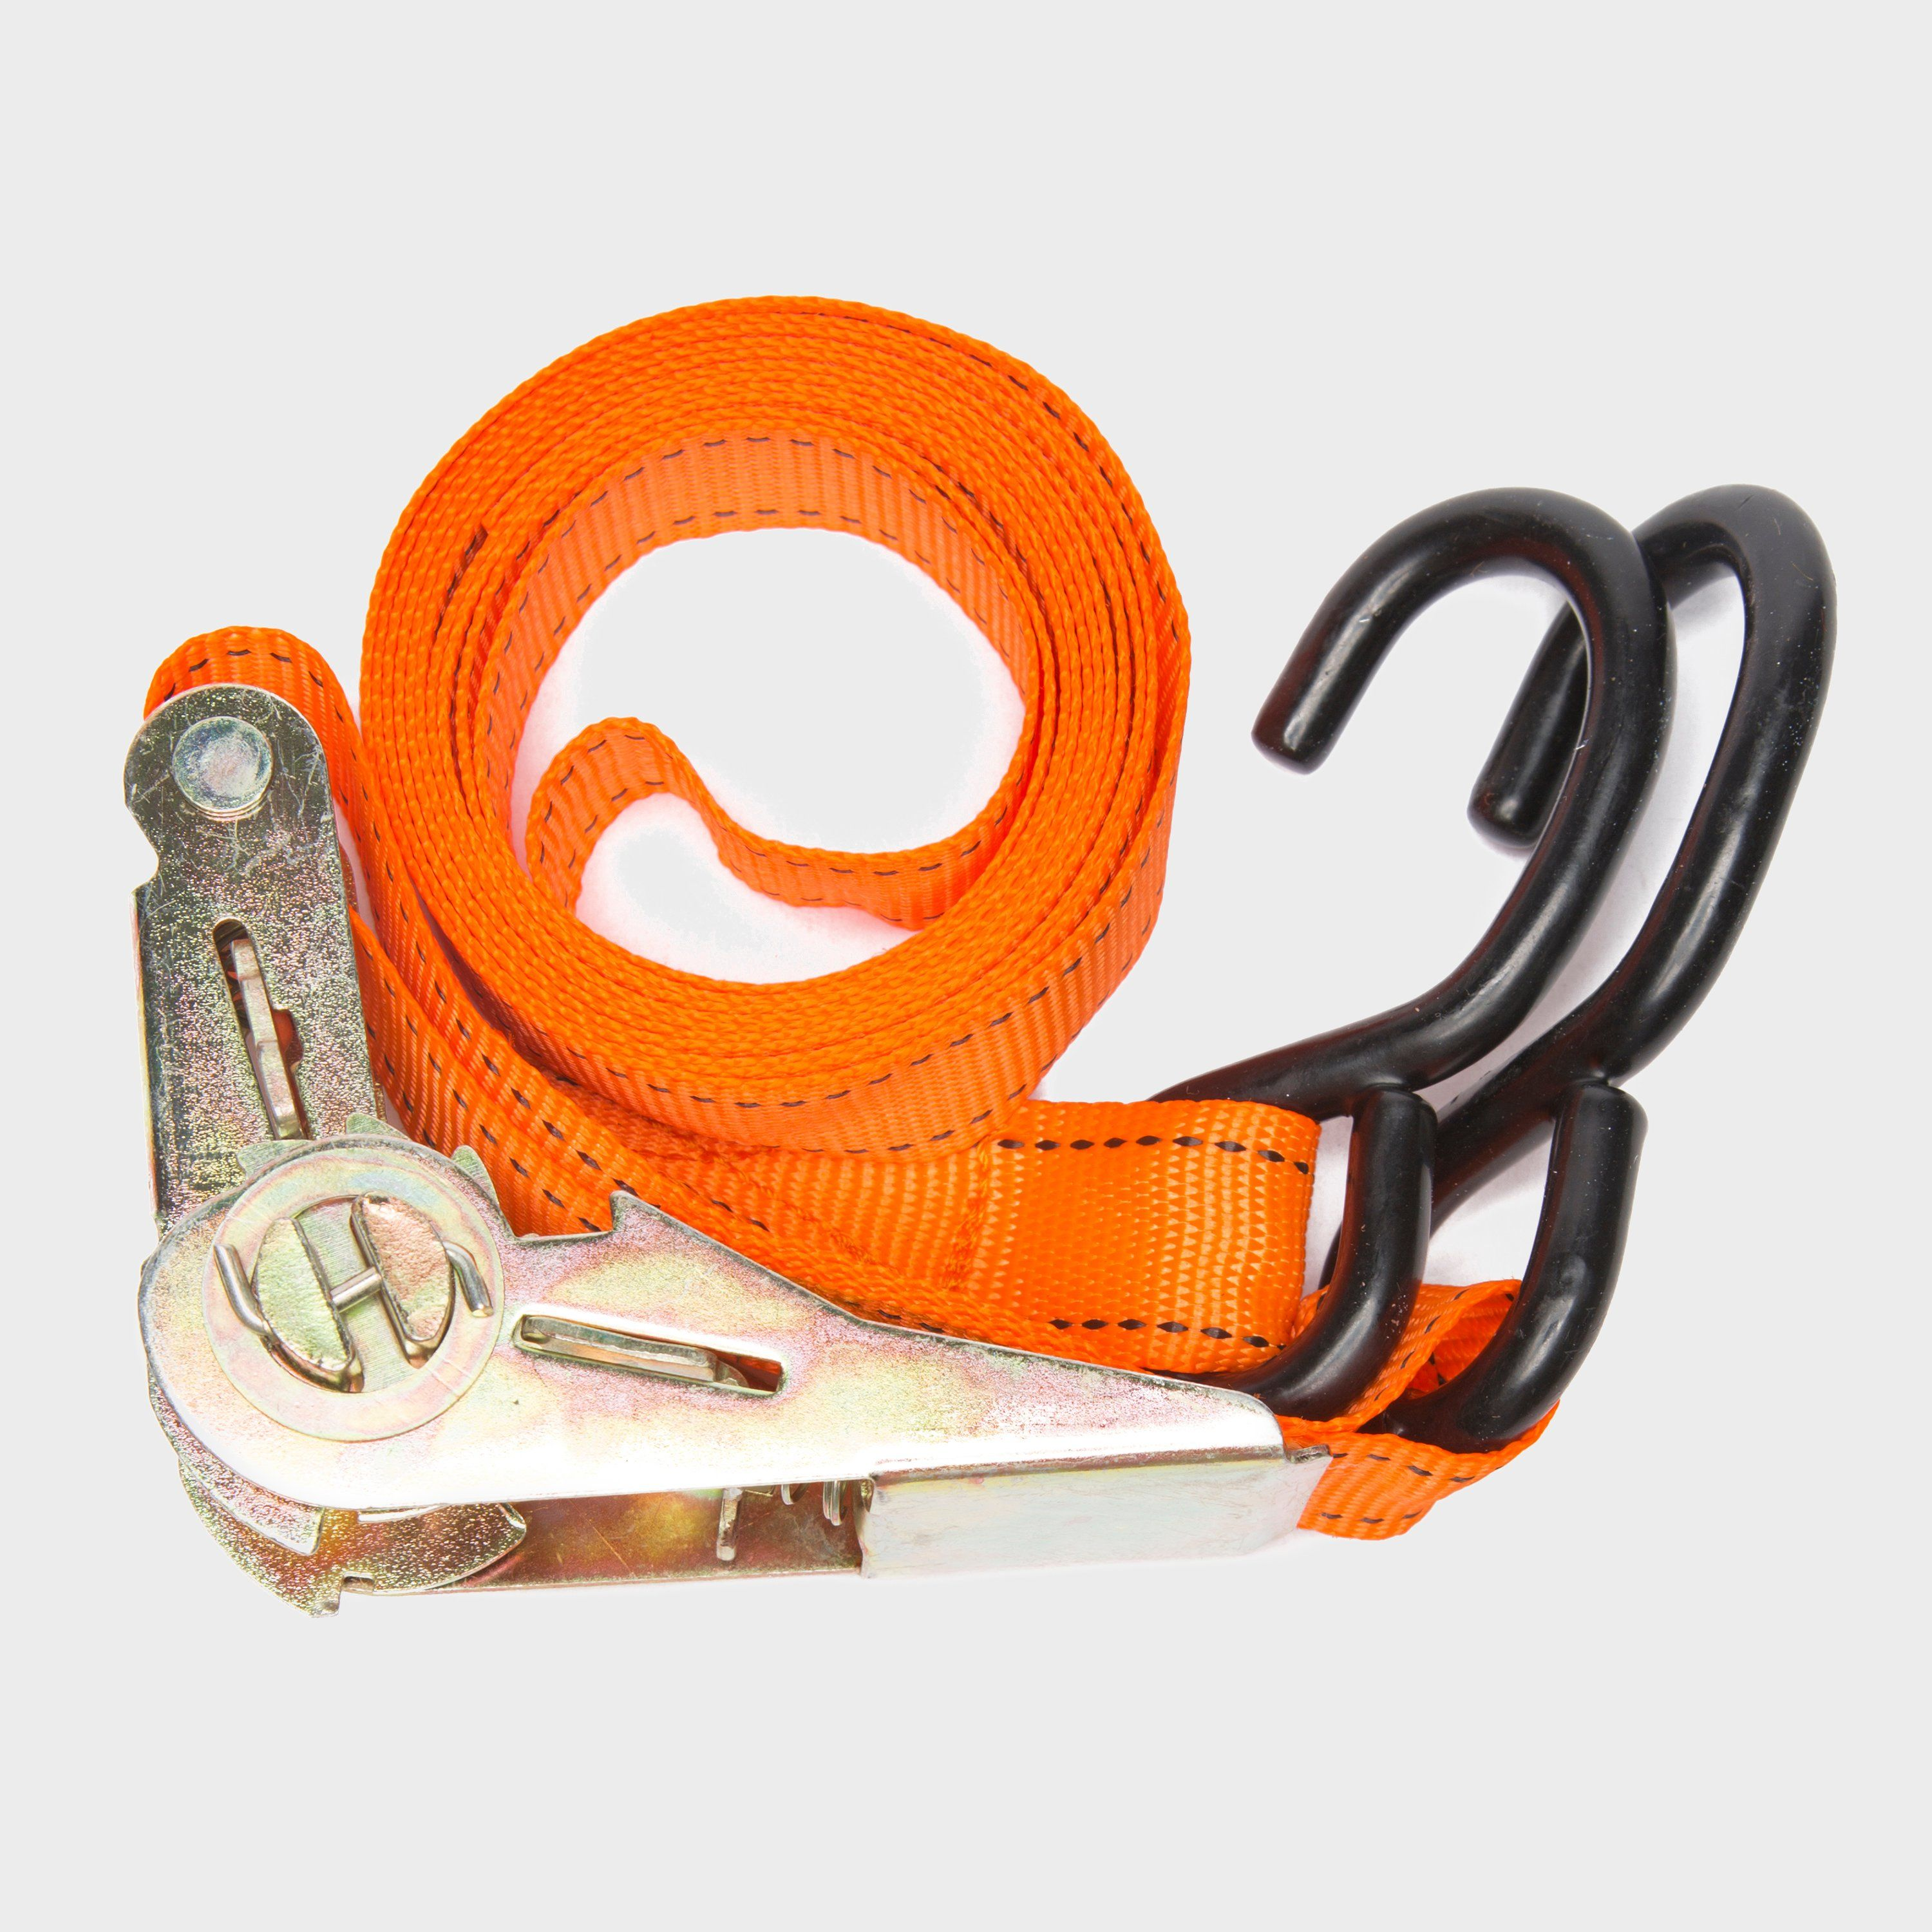 MOUNTNEY 3.5m Ratchet Strap And Hook